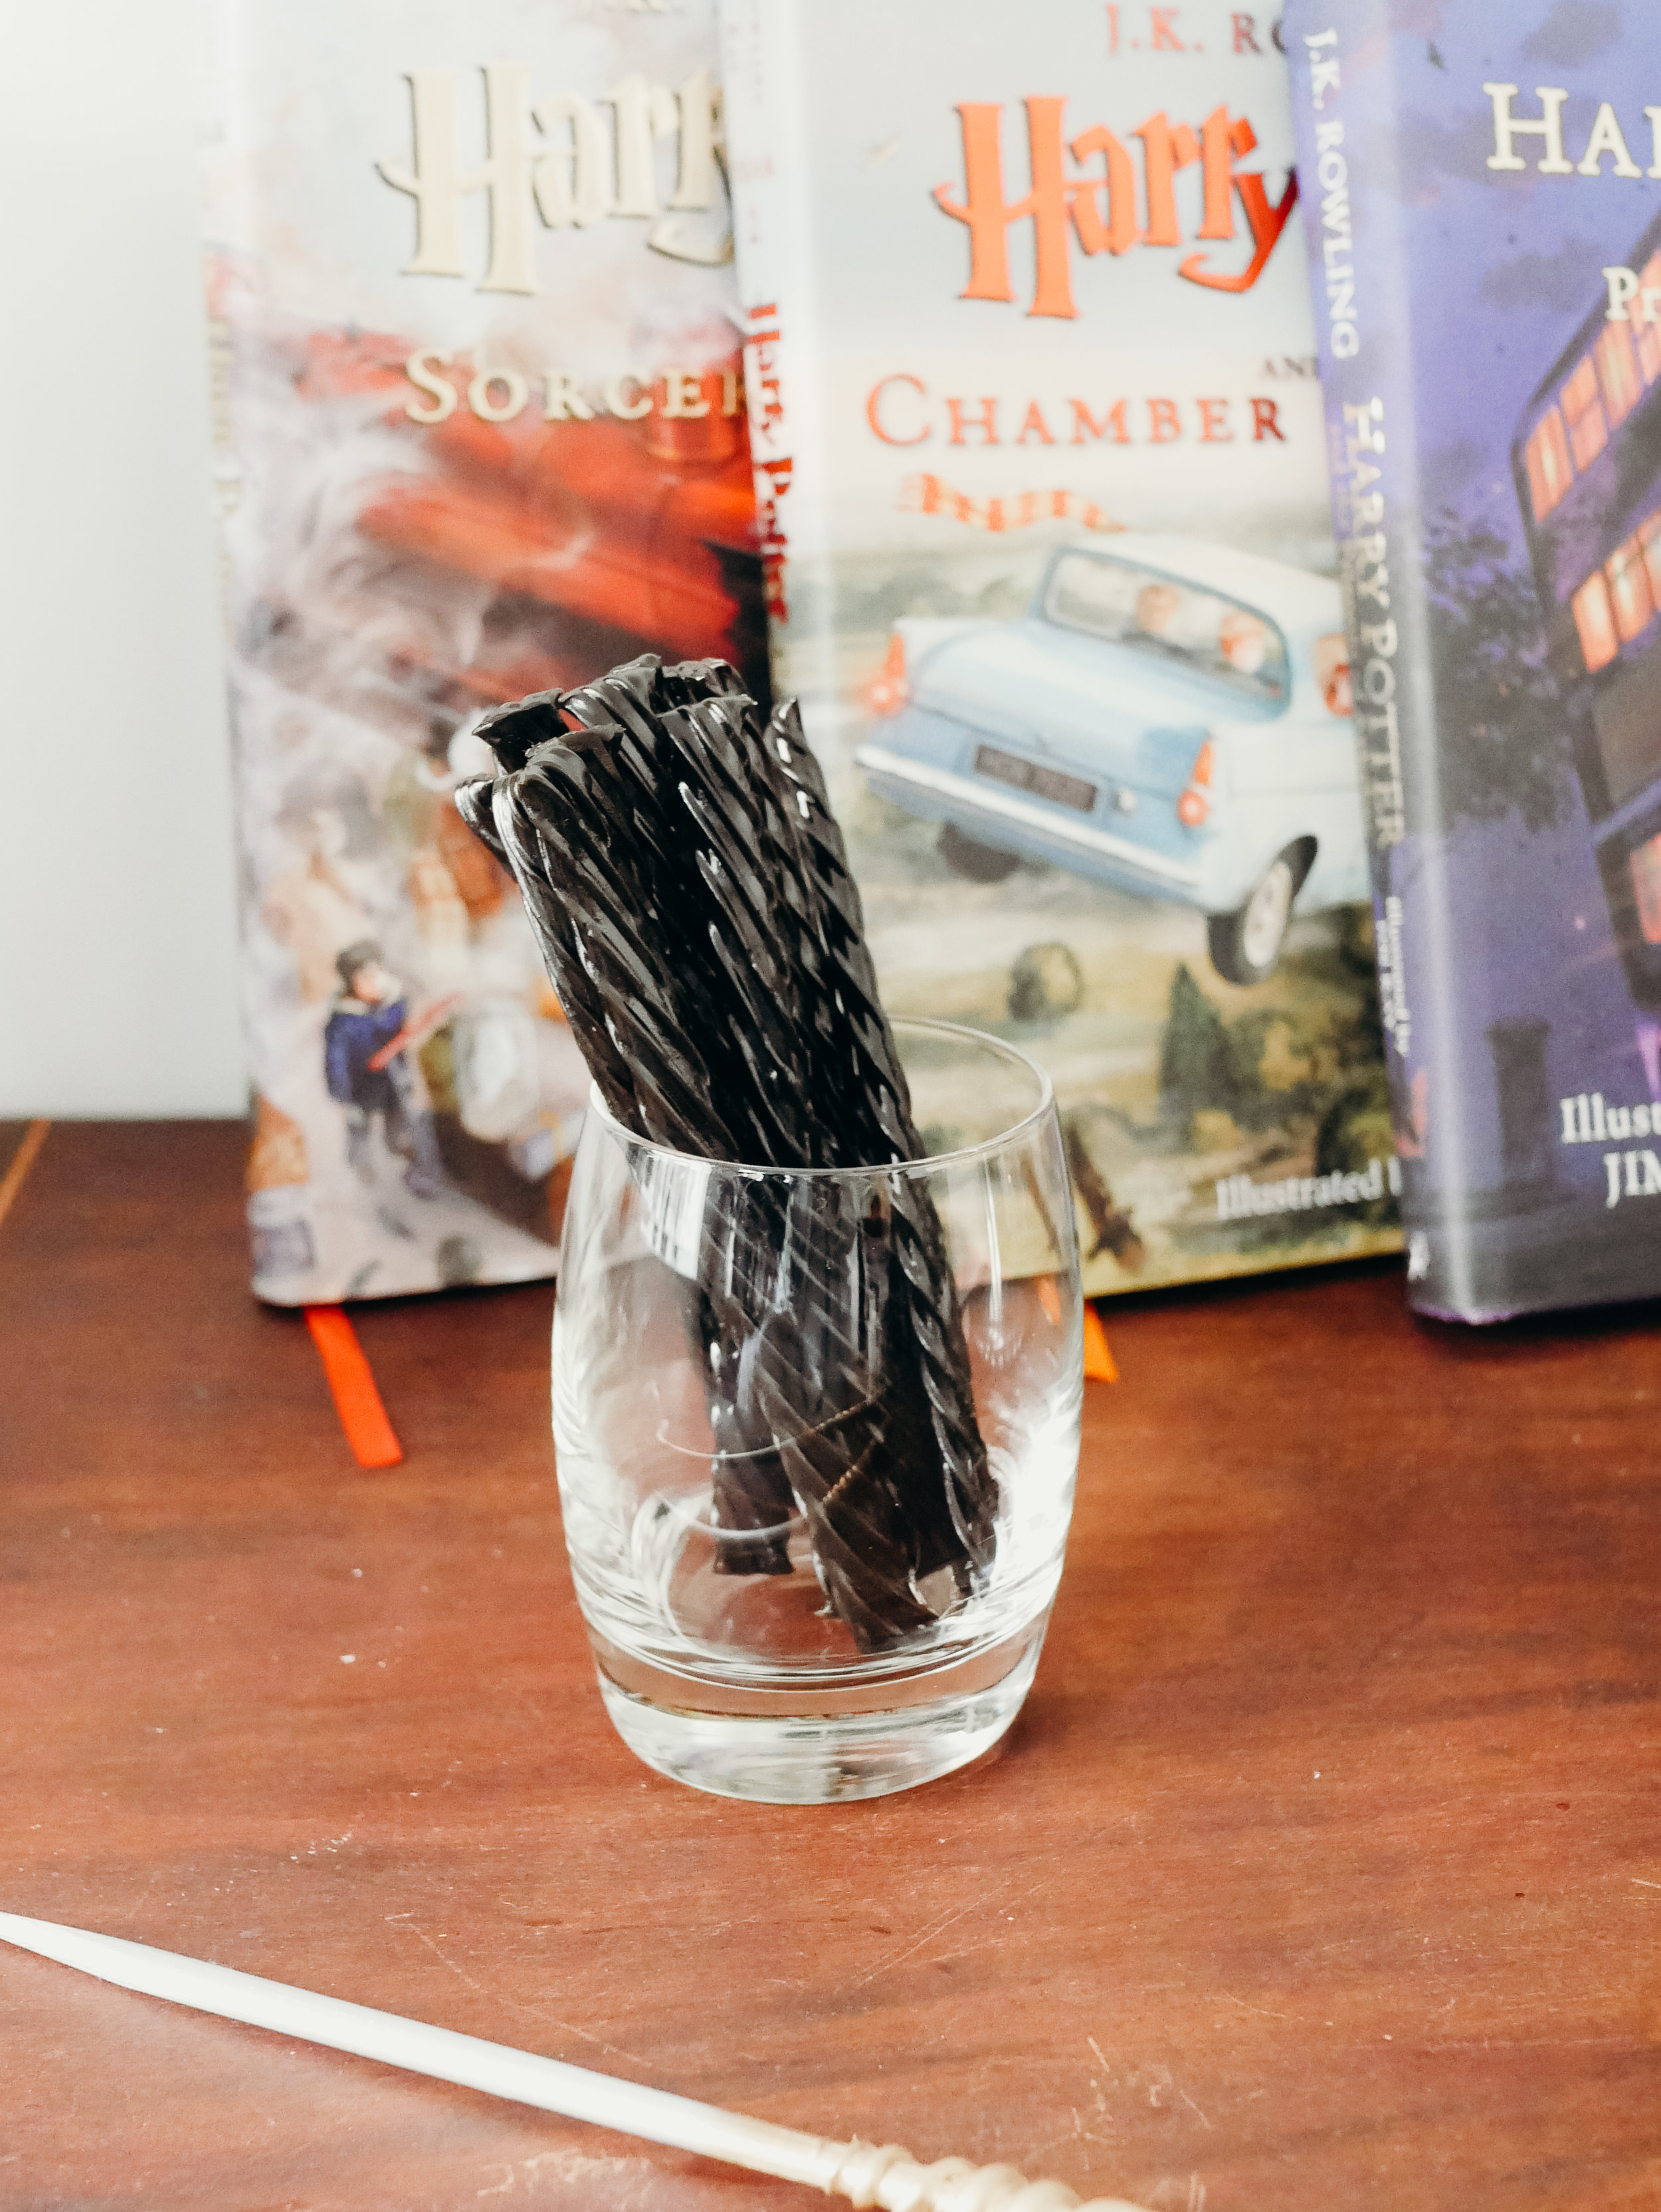 Harry Potter Licorice Wands